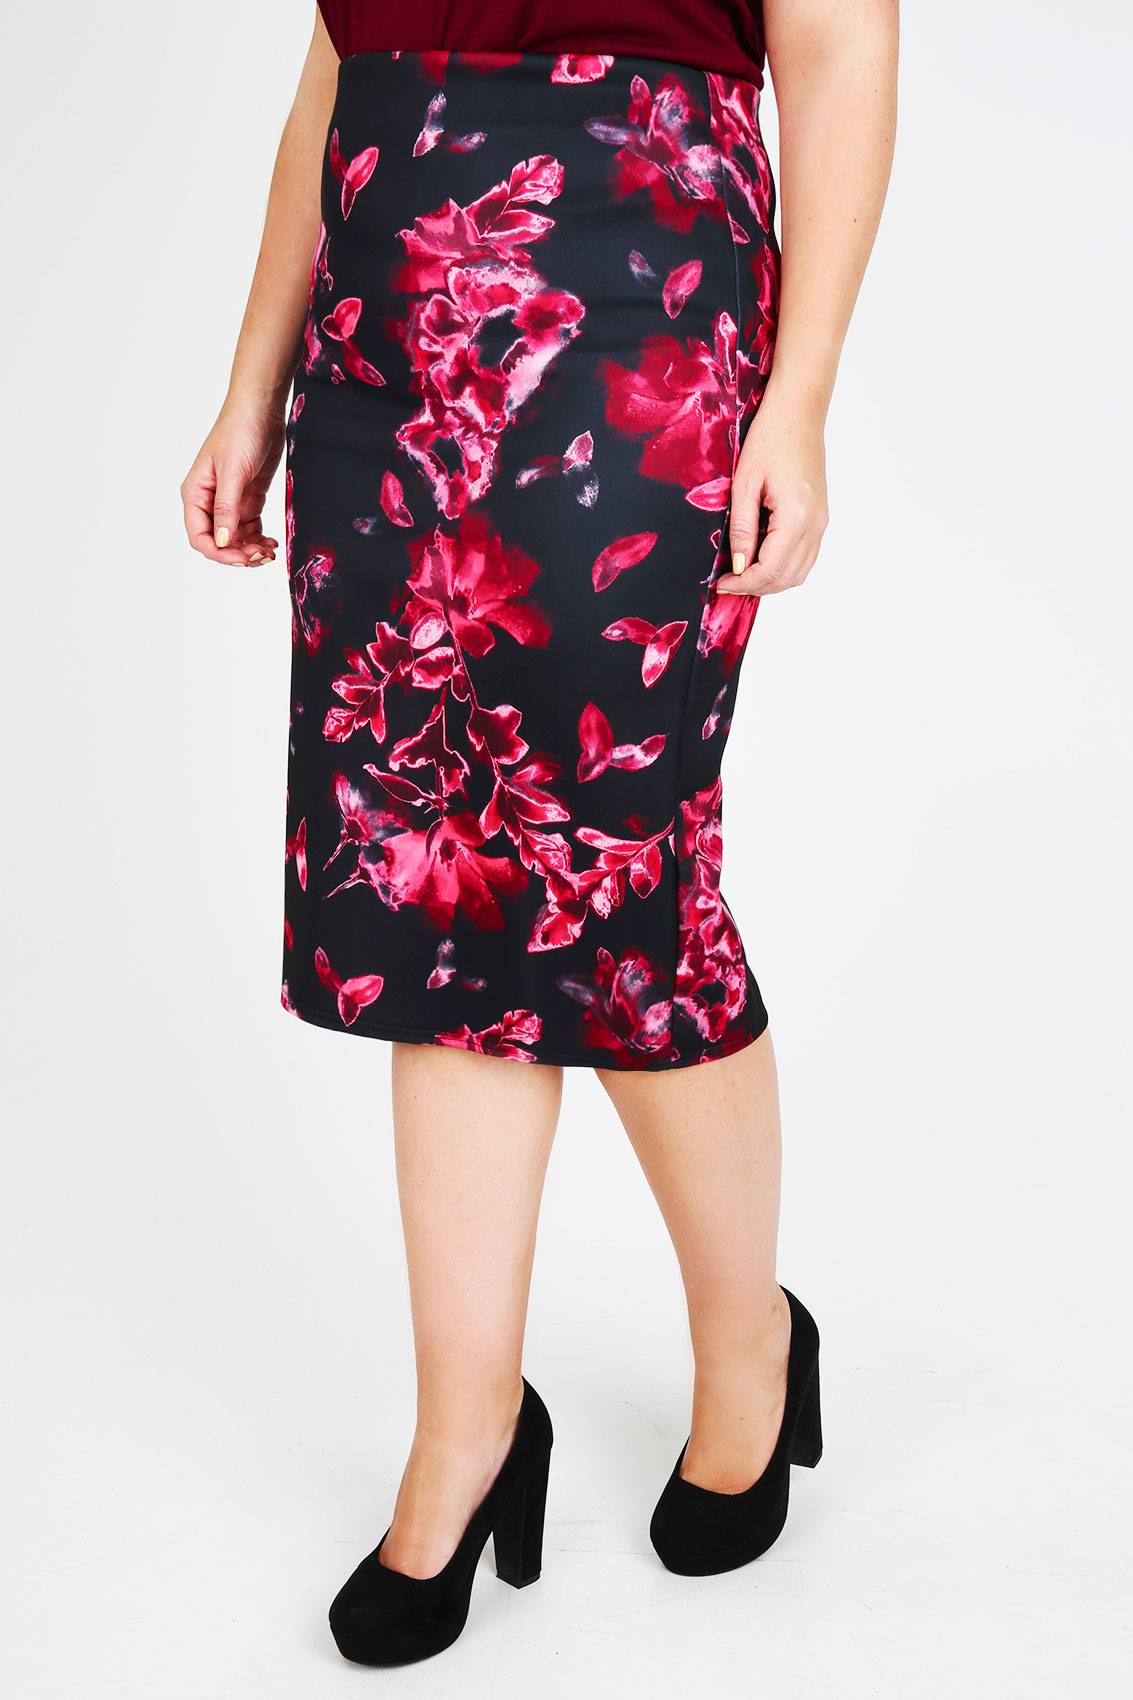 black pink floral print pencil skirt with zip detail